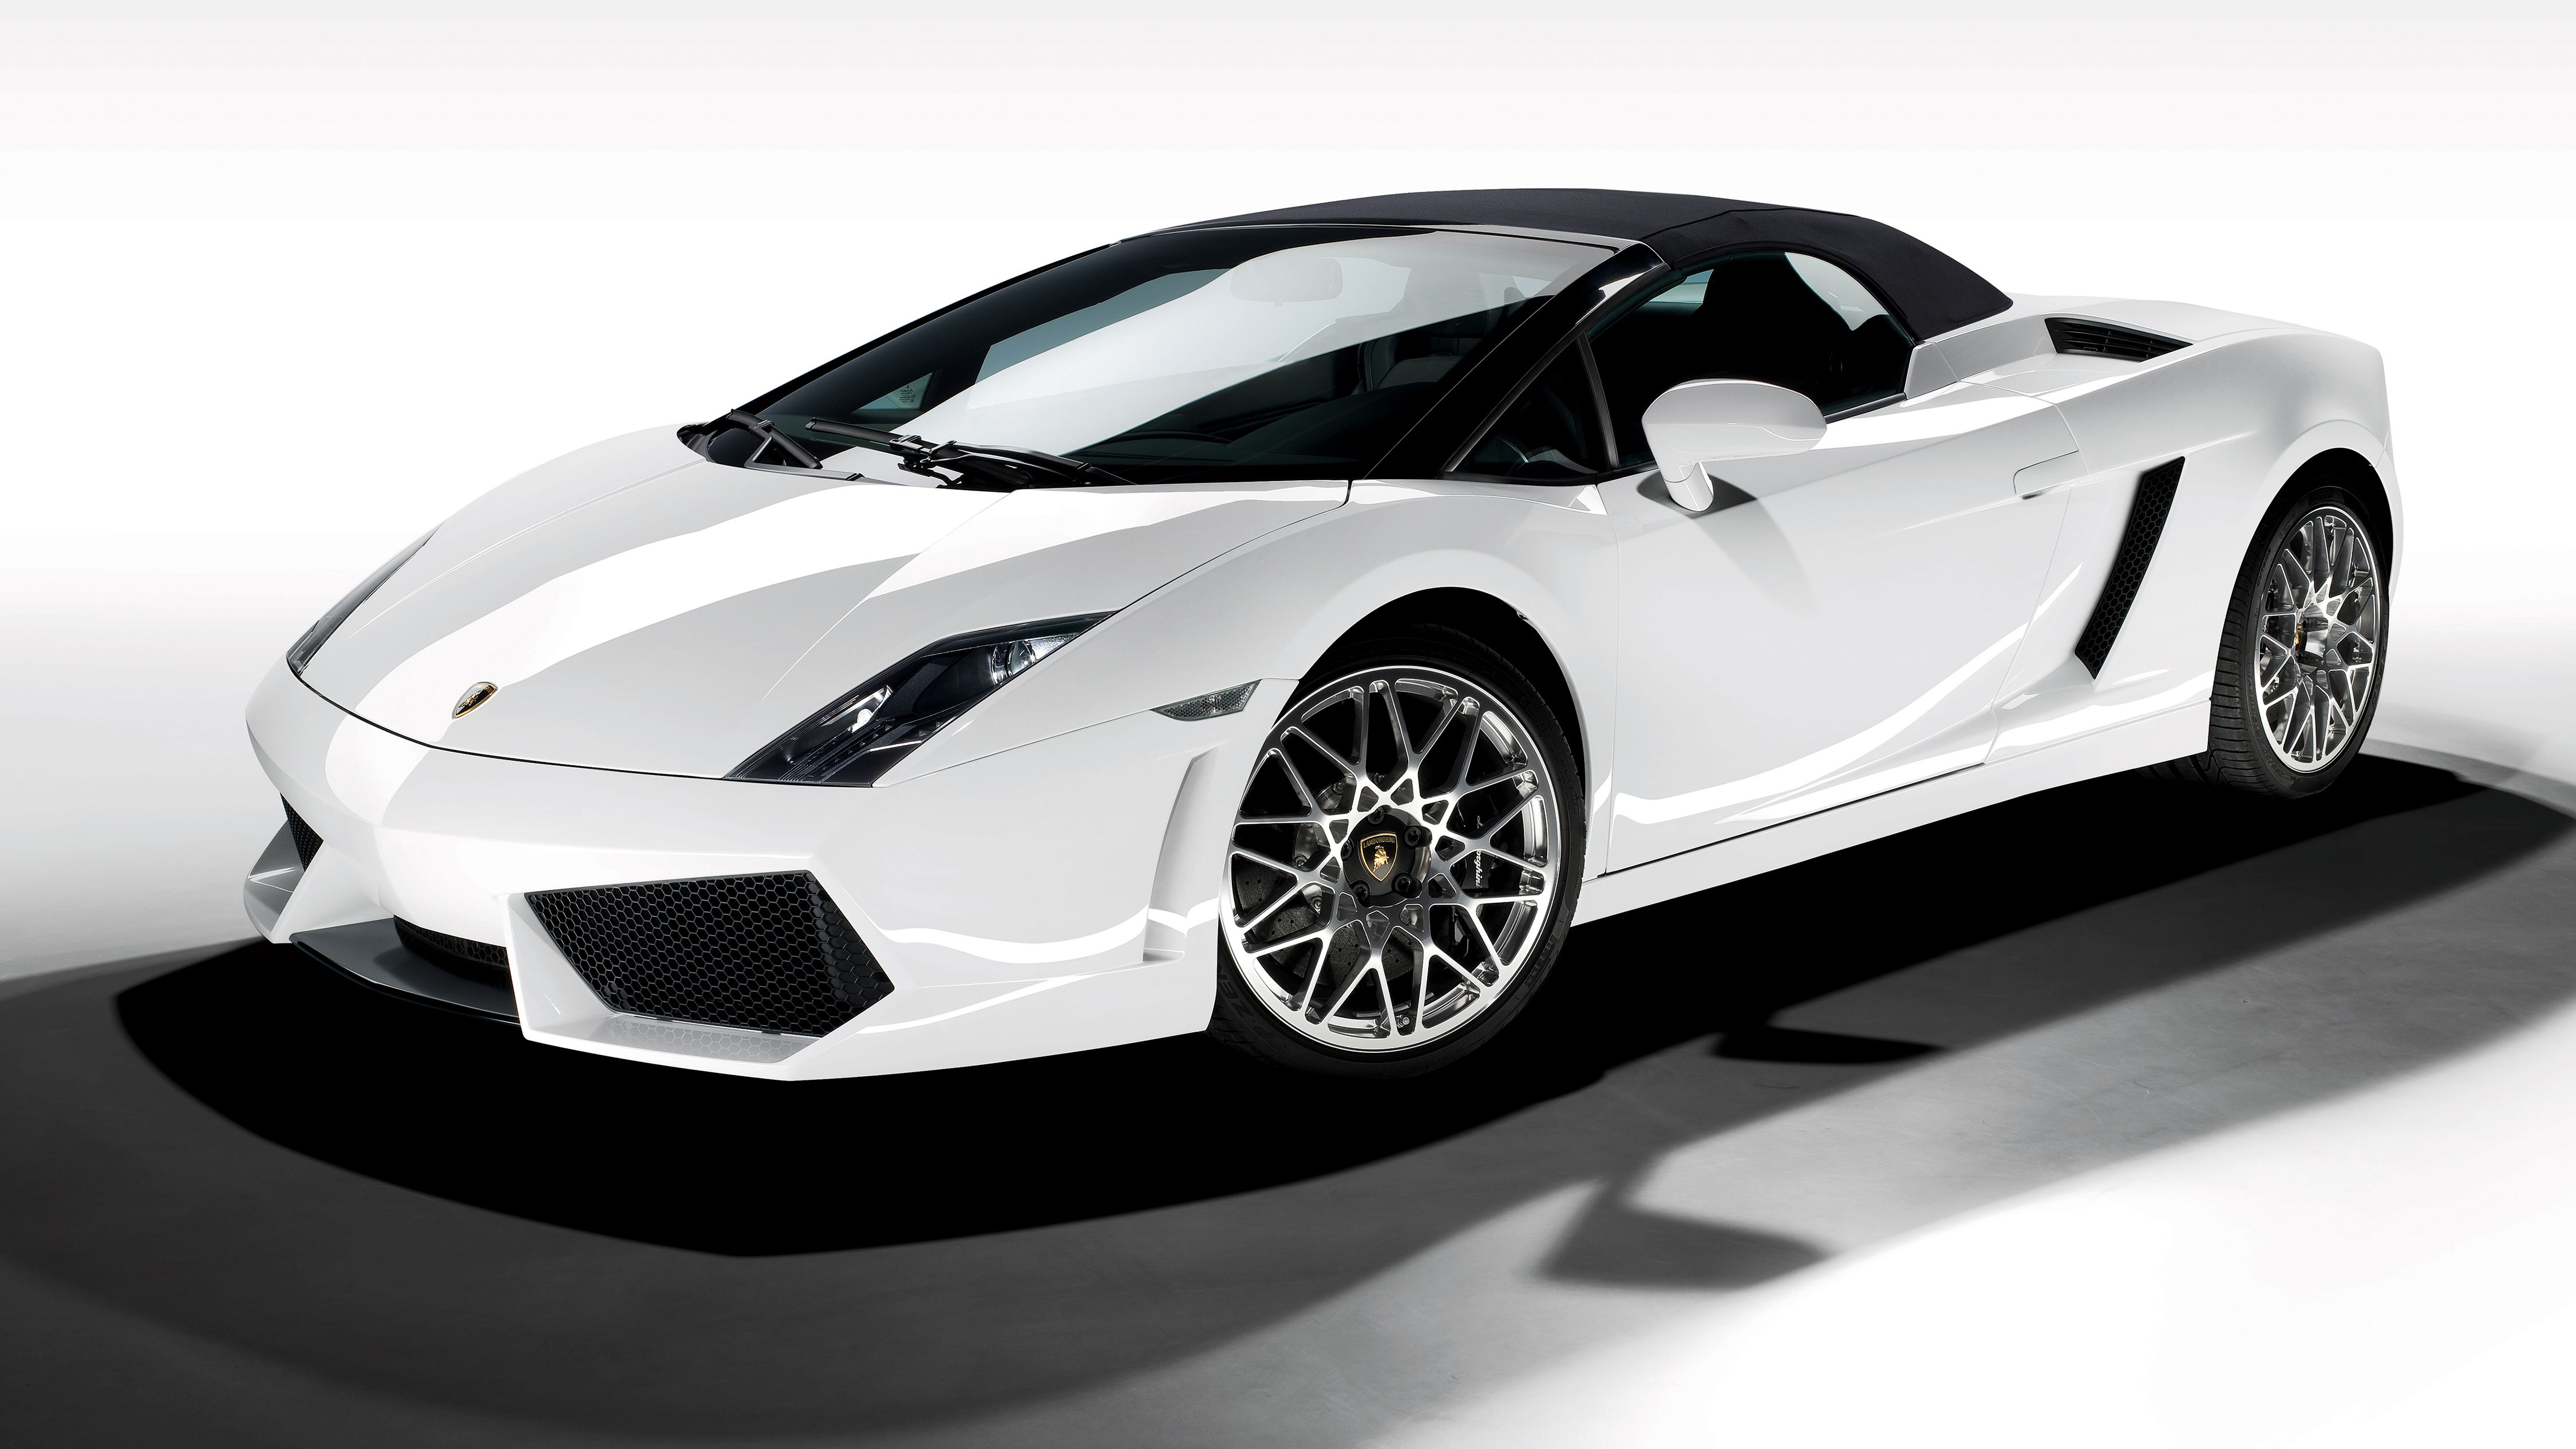 to choices and we some renting car available you an process lamborghini envus this dsc get rental motors rentals best motorsports let started going also their re finest at exotic in of with reveal the mind s